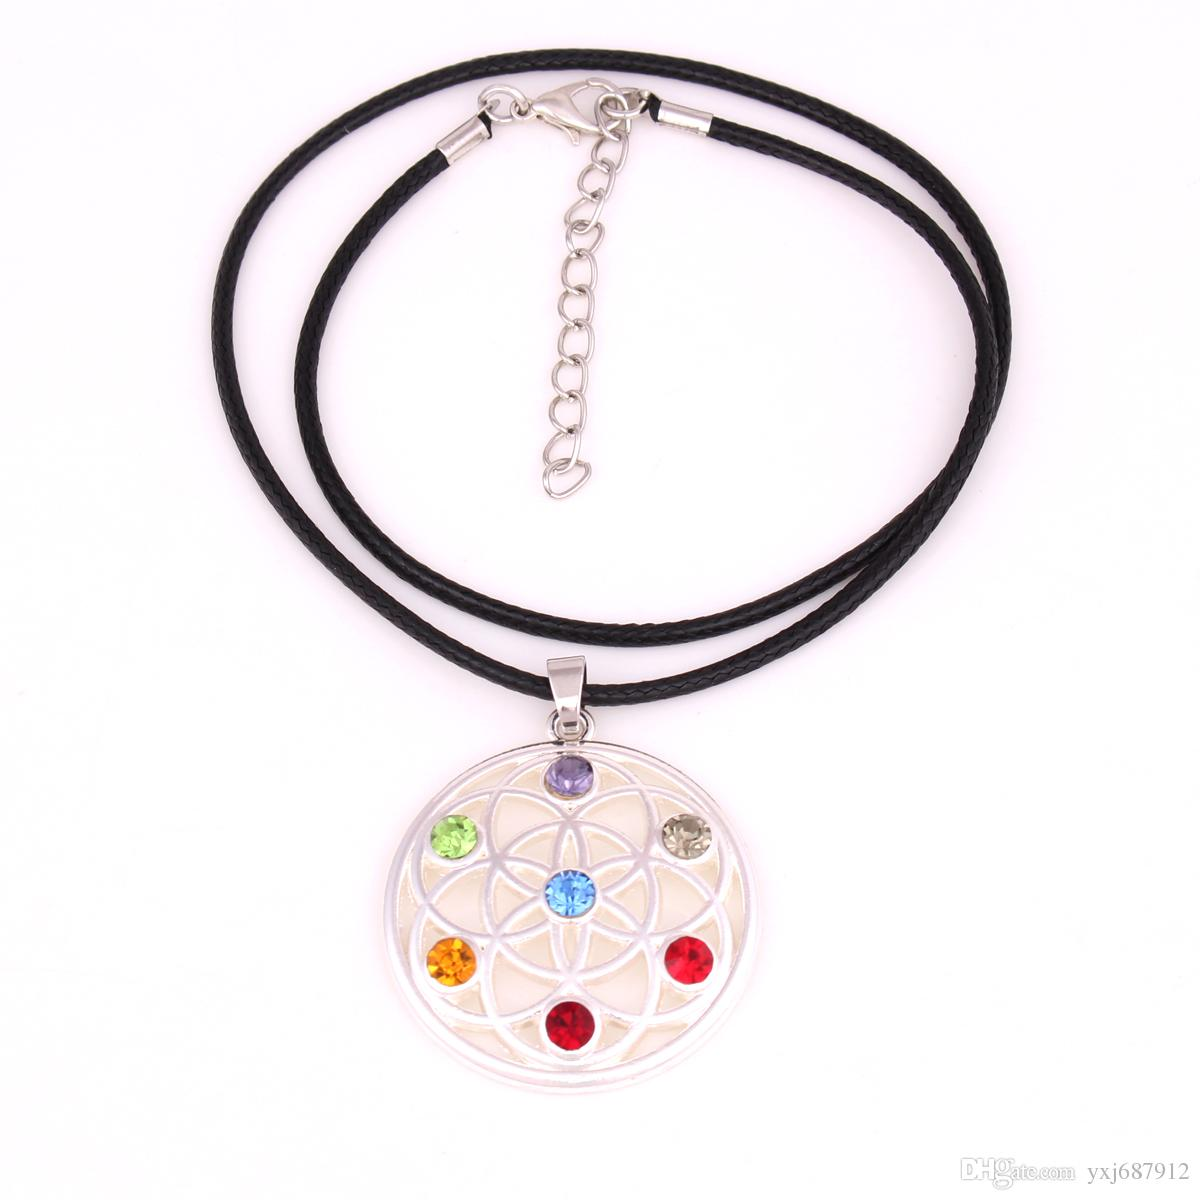 HX8 necklace Chain/link chain/leather rope chain necklace Buddhist necklacewith flower of life seven chakra crystals symbol pendant